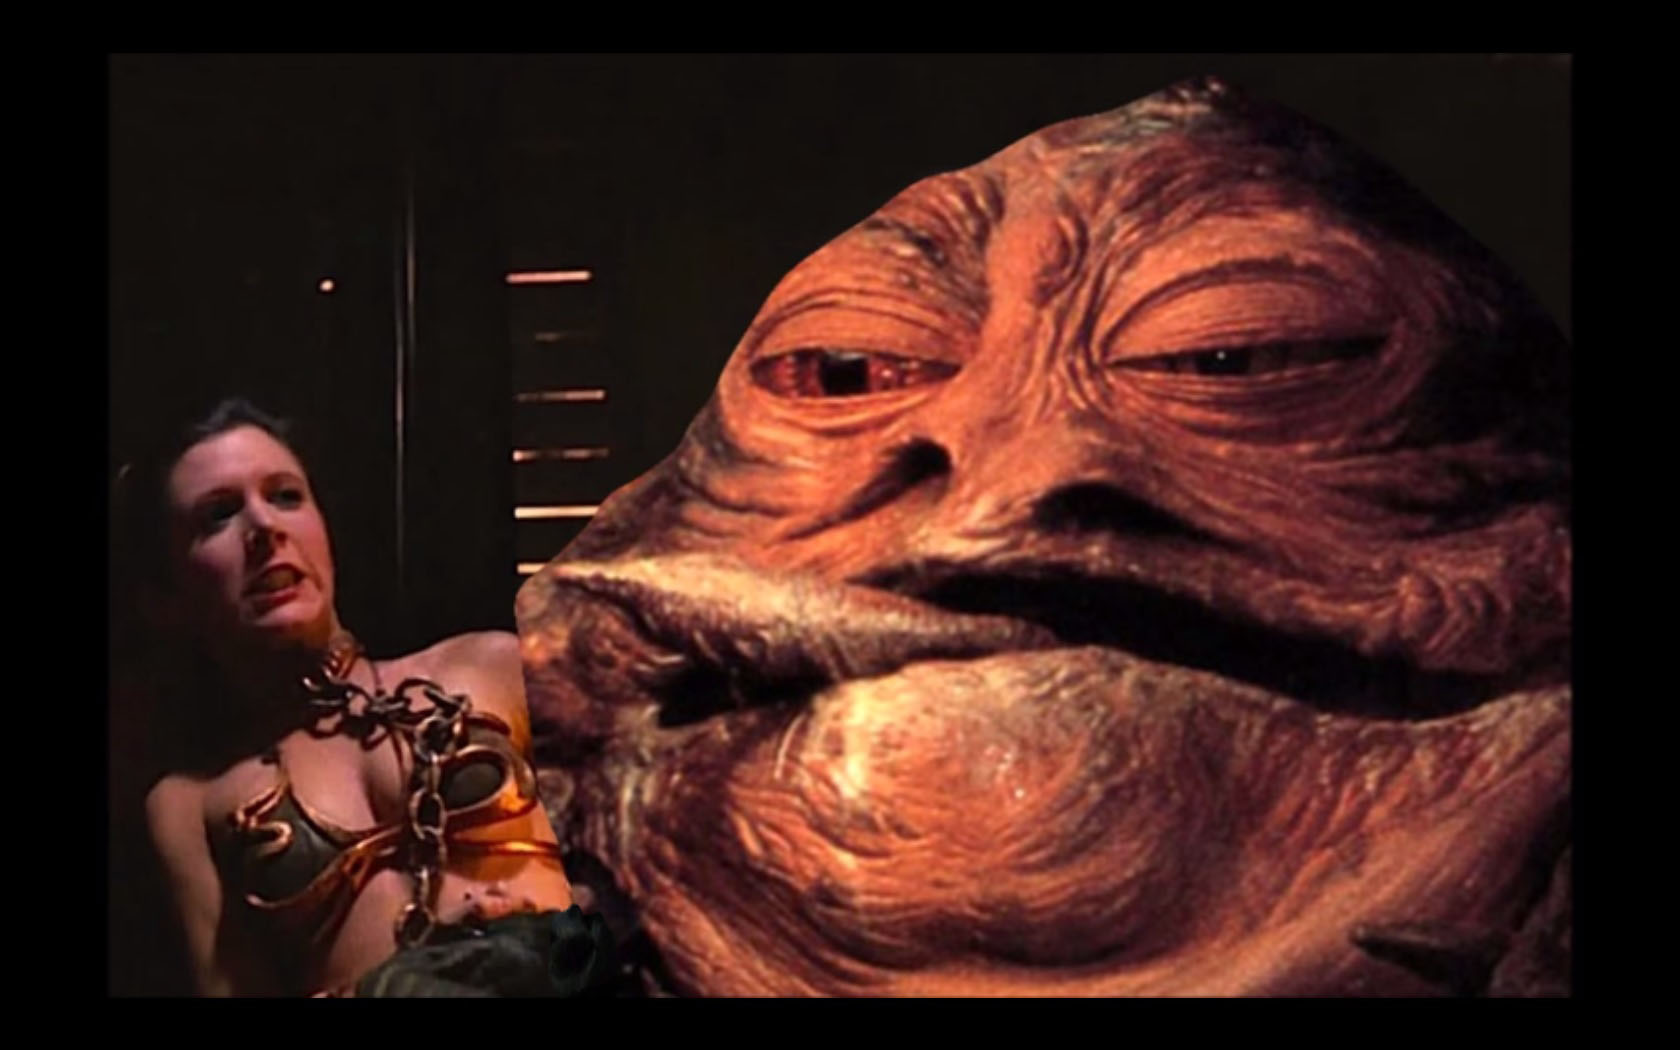 jabba and leia drool and discuss - Pokemon Go Search for ... Jabba The Hutt And Leia Fanfiction